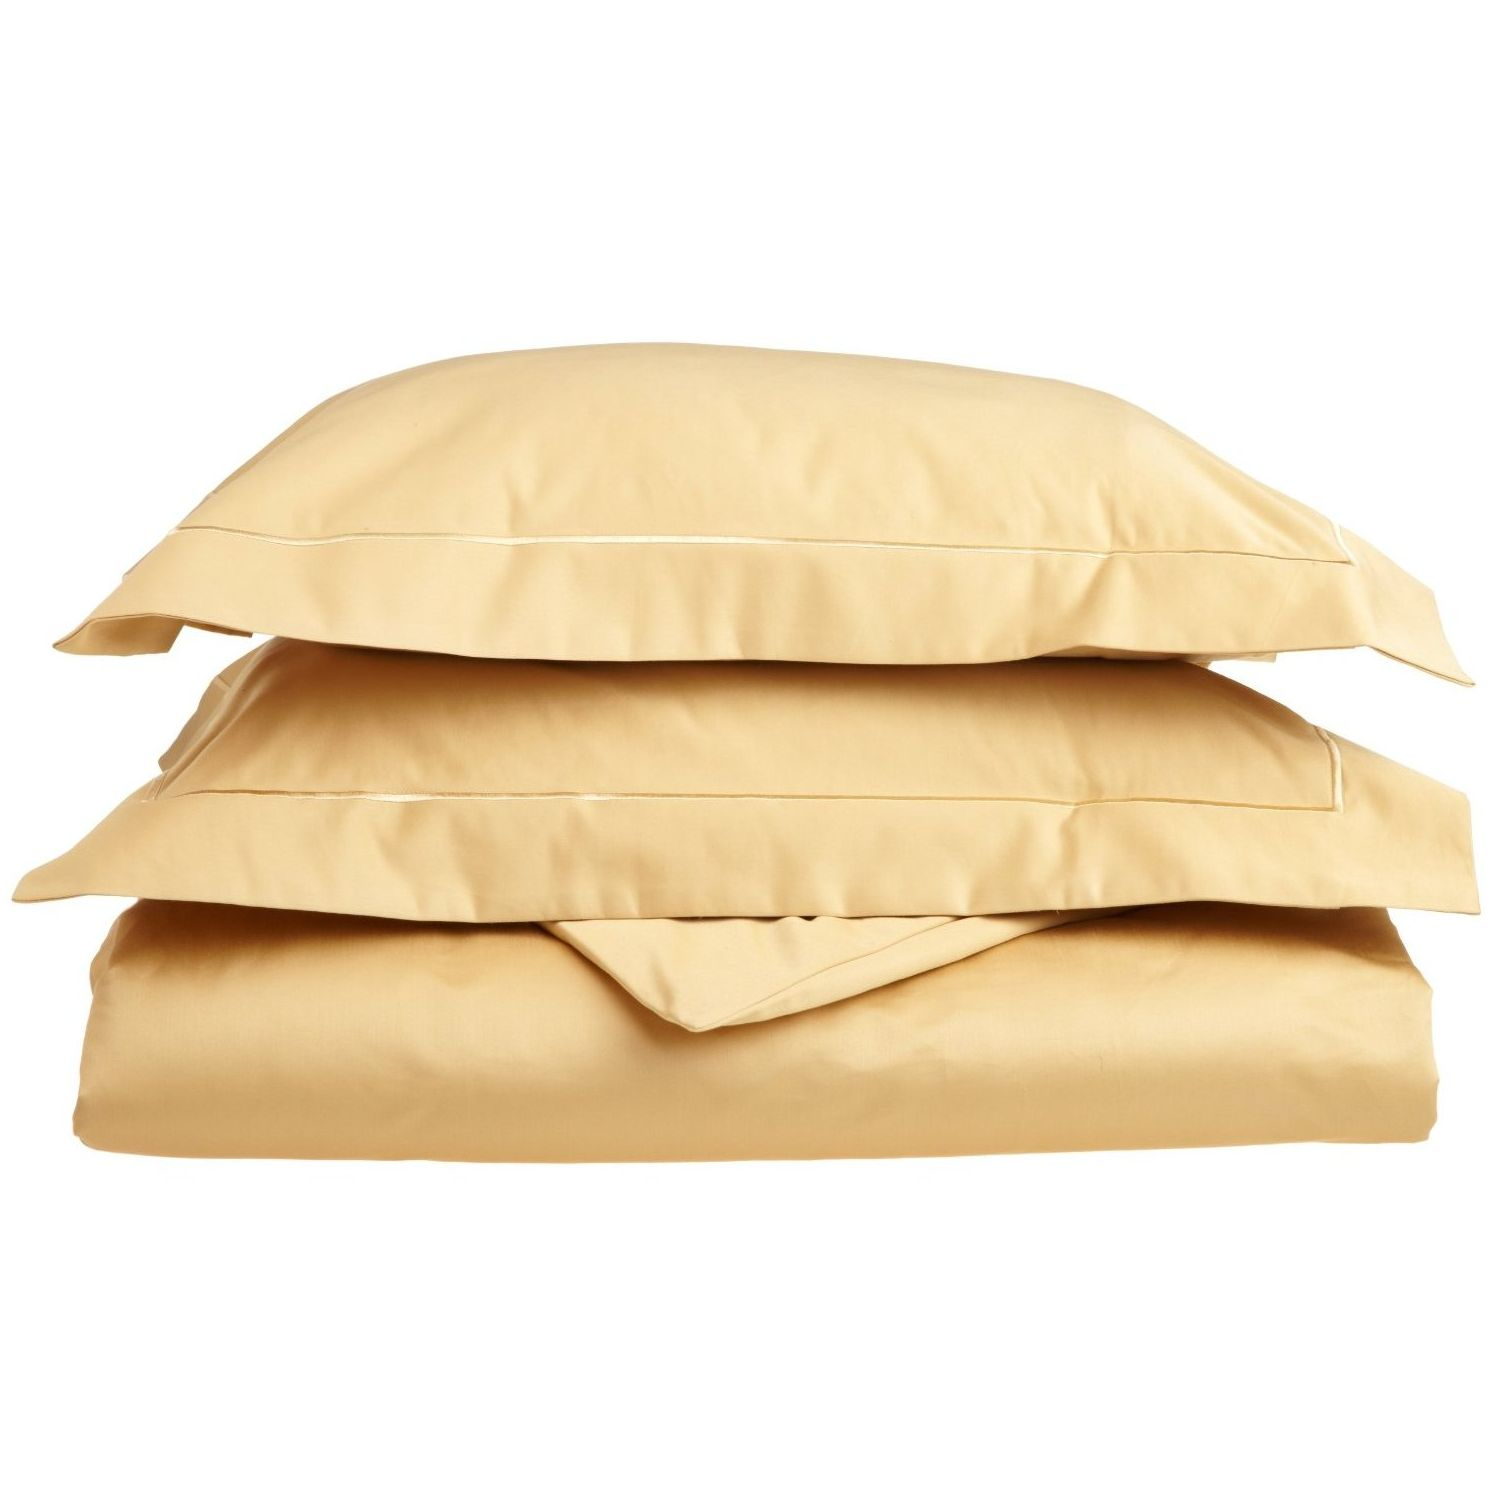 Embroidered Duvet Cover Set With Shams, Long-Staple Cotton, 800-Thread-Count